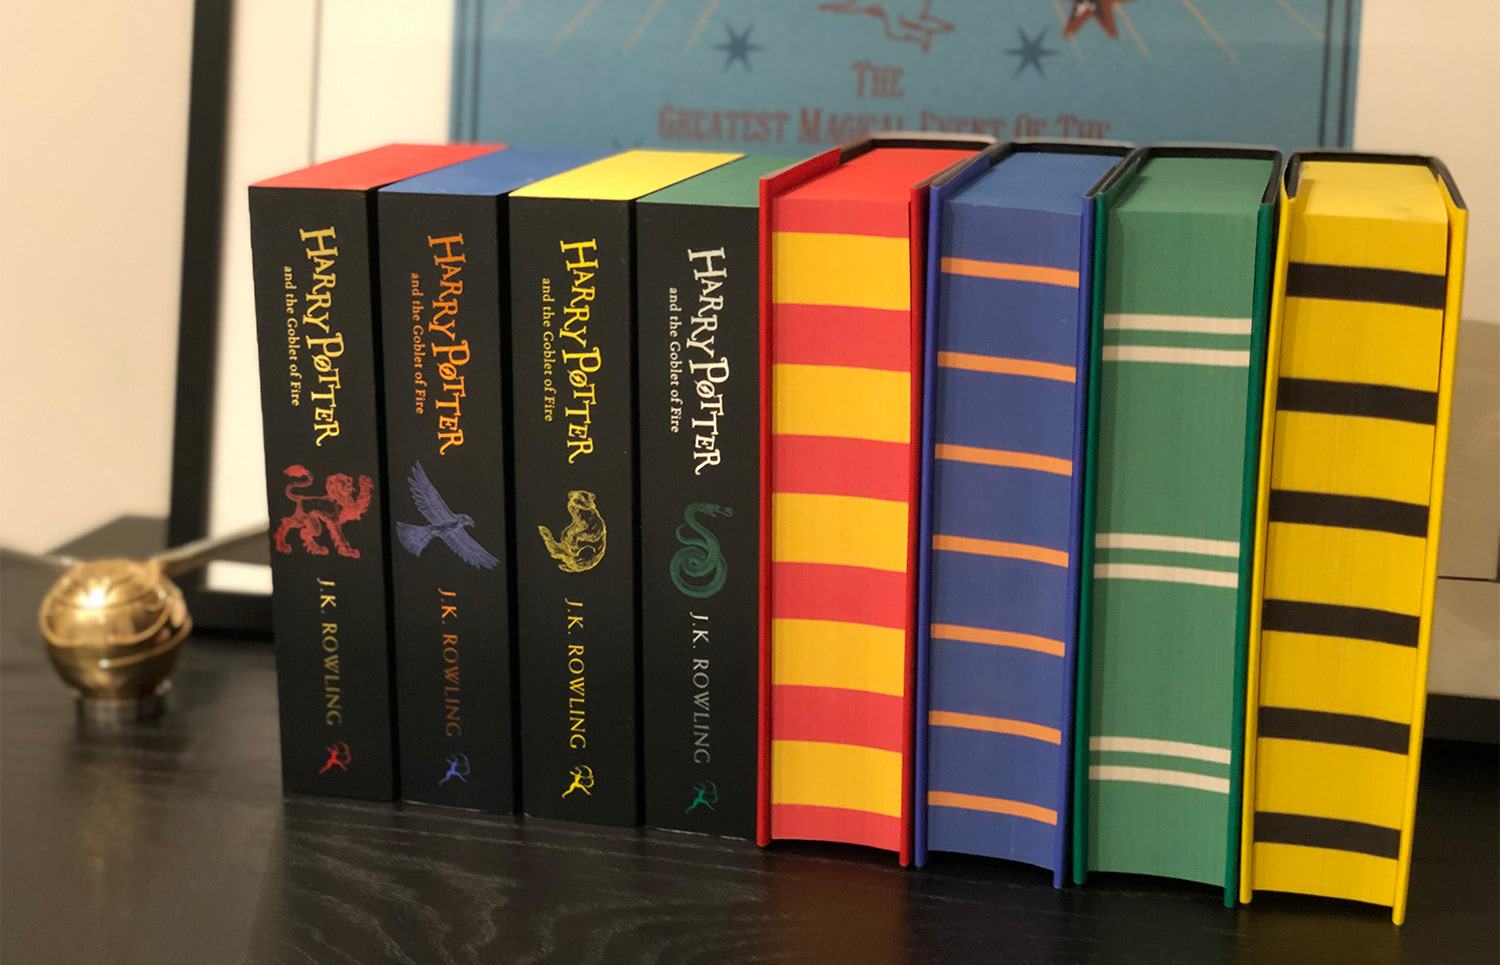 'Goblet of Fire' house editions